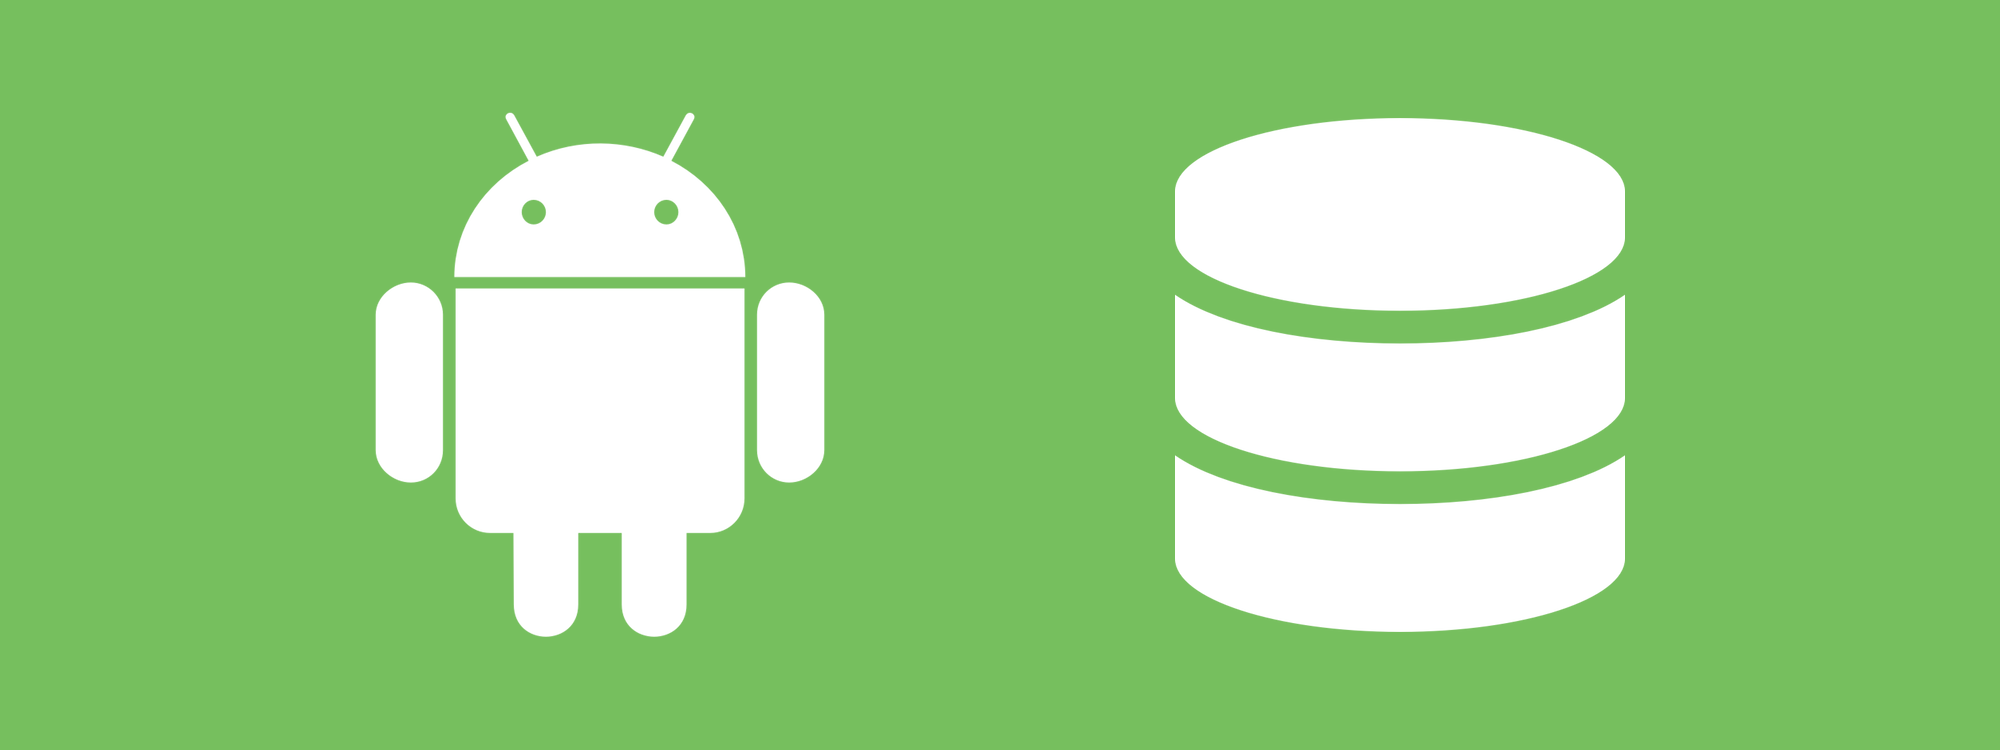 Ship an Android app with a pre-populated database - Johann